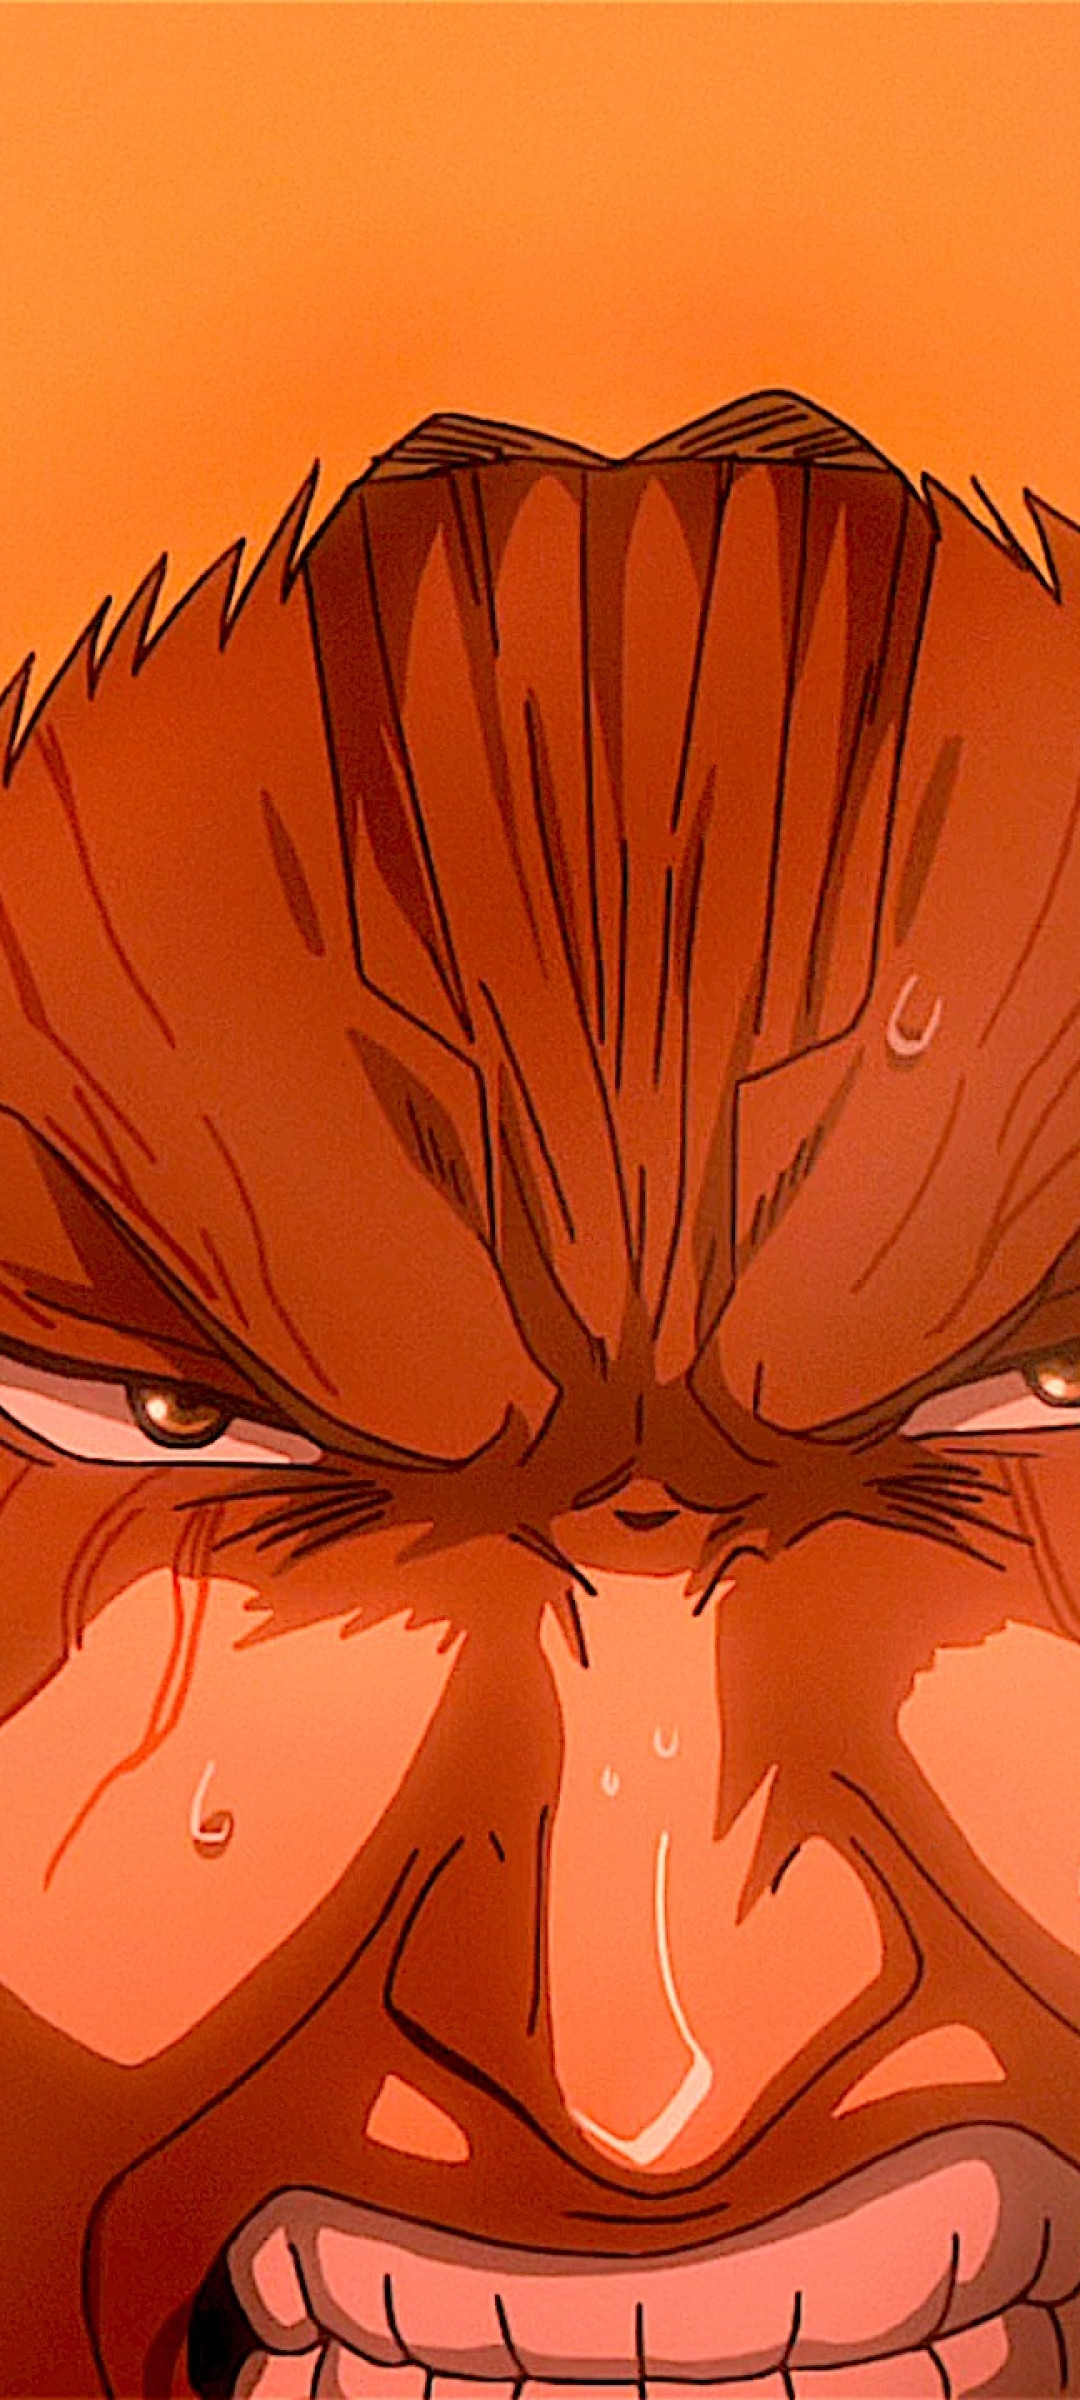 1080x2400 Reiner Braun Attack On Titan 1080x2400 Resolution Wallpaper Hd Anime 4k Wallpapers Images Photos And Background